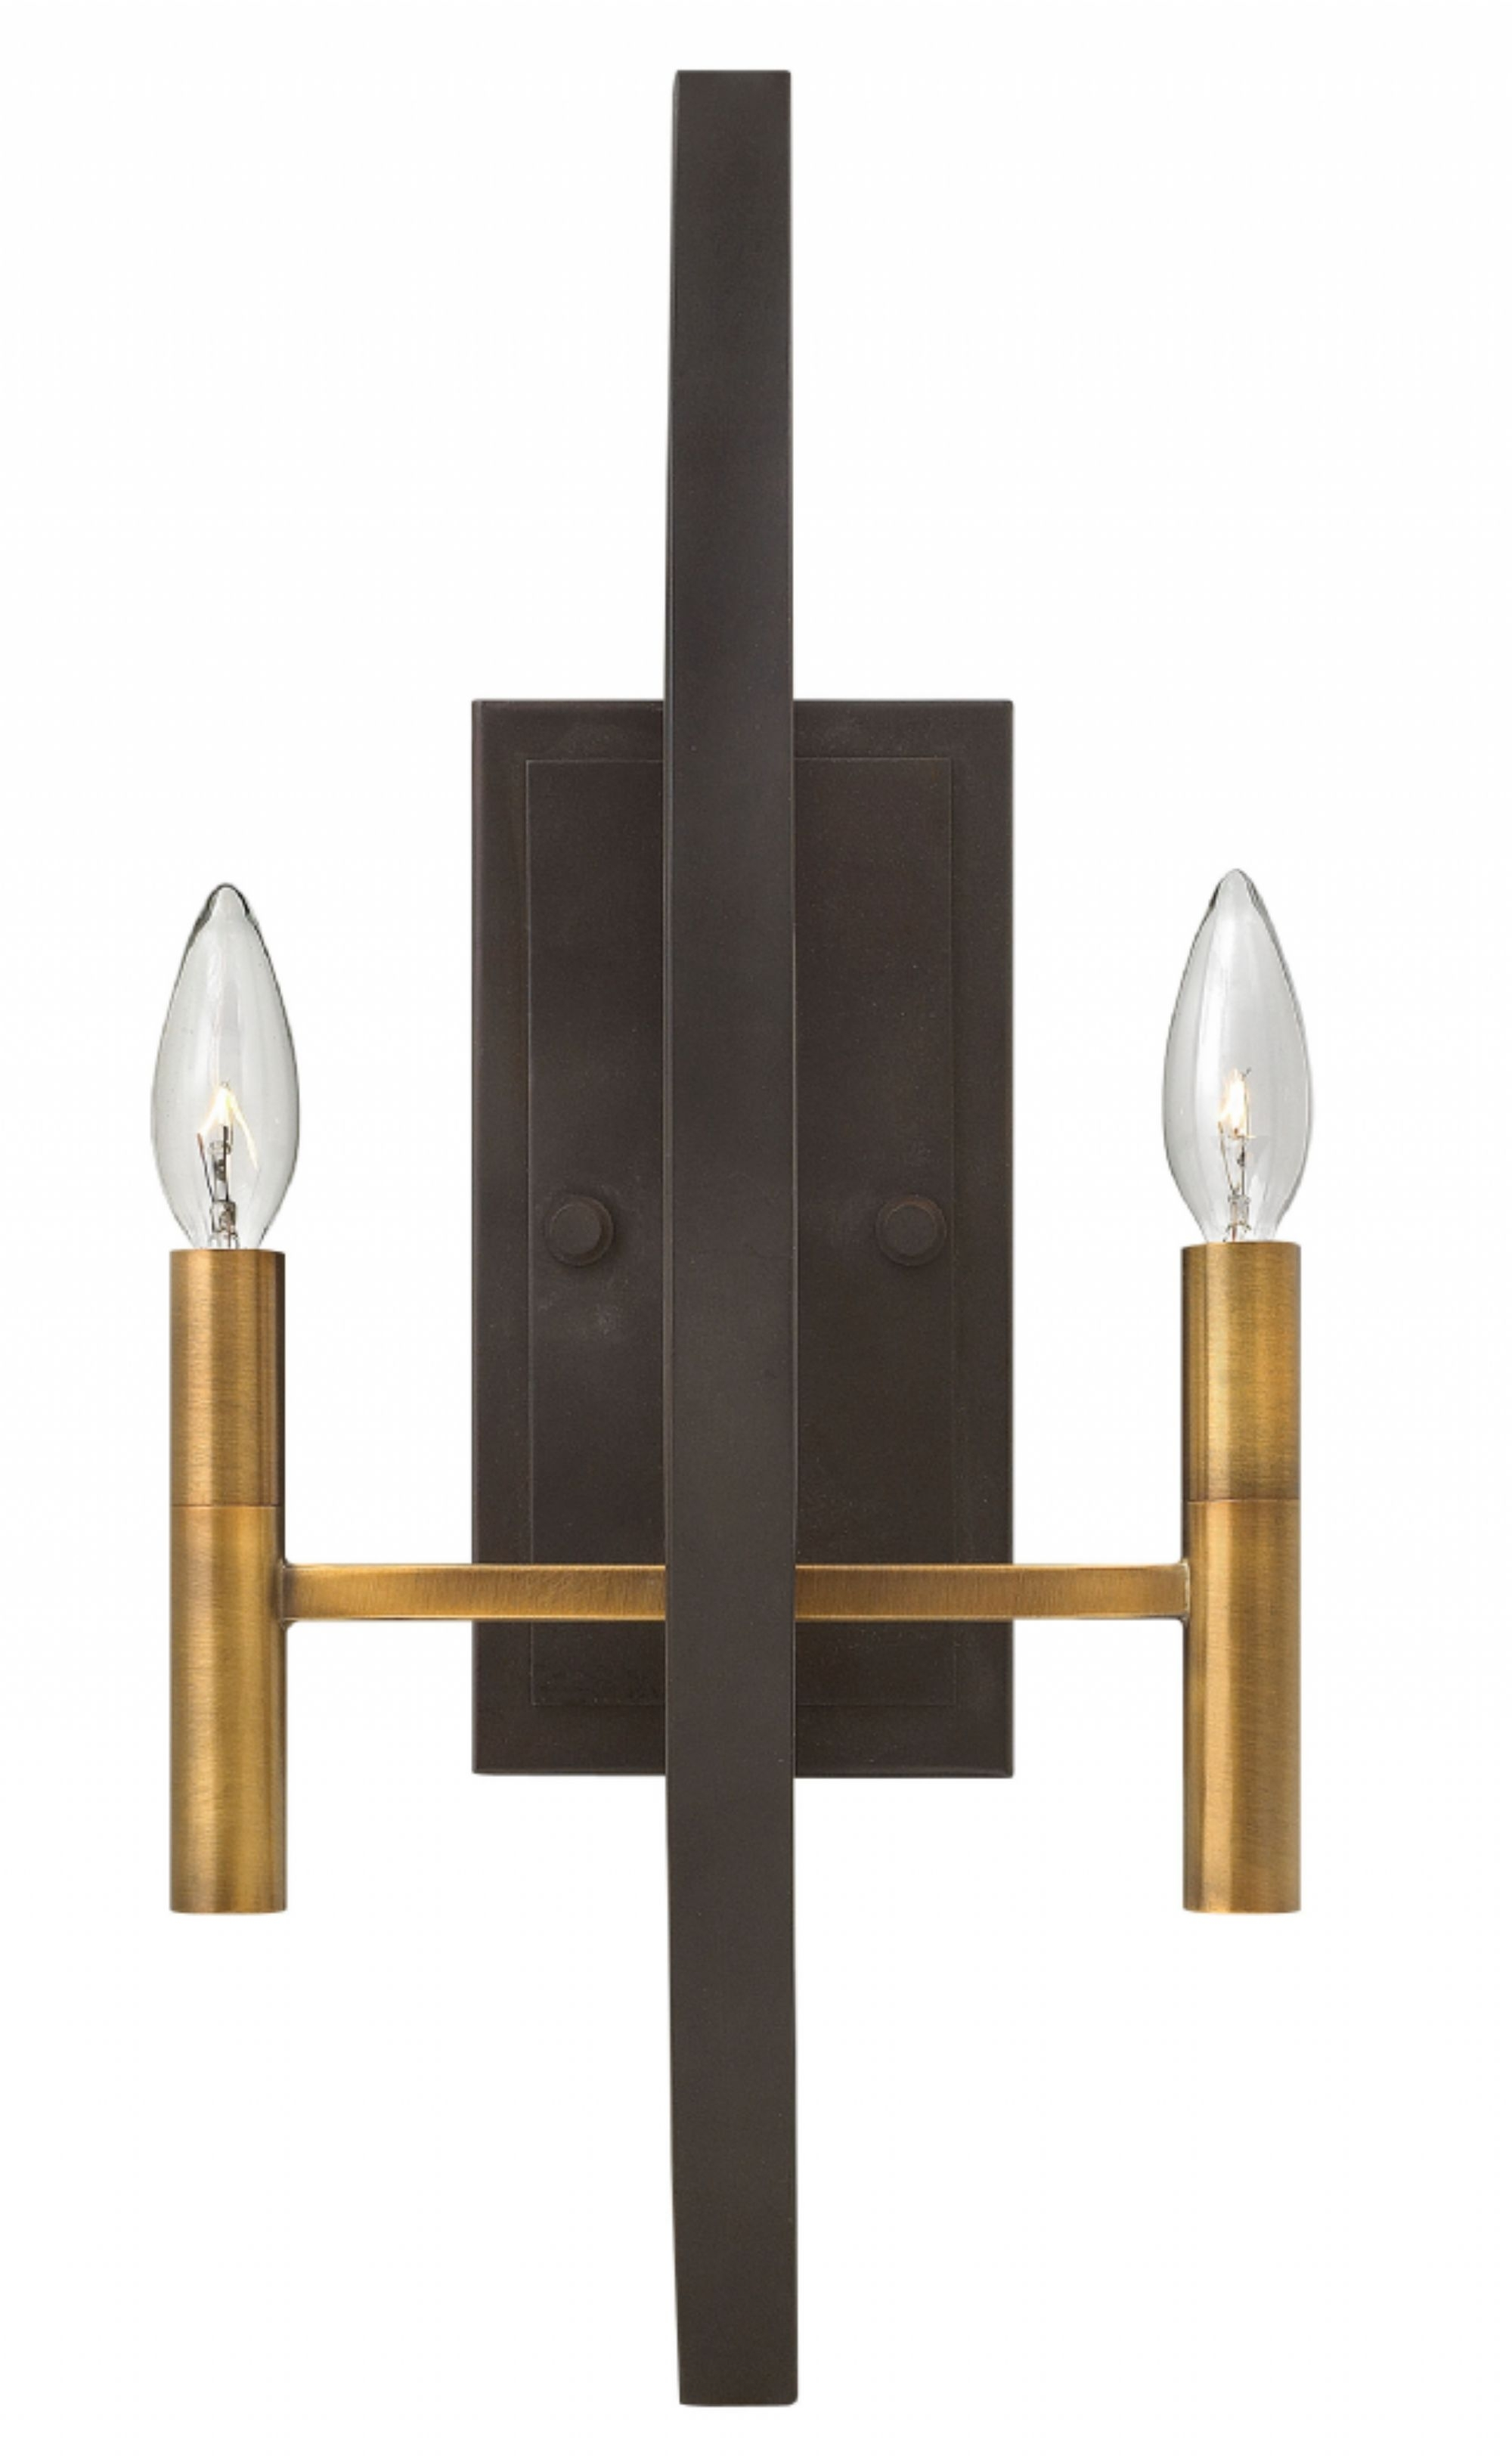 Spanish Bronze Euclid > Interior Wall Mount With Regard To Double Wall Mount Hinkley Lighting (#15 of 15)